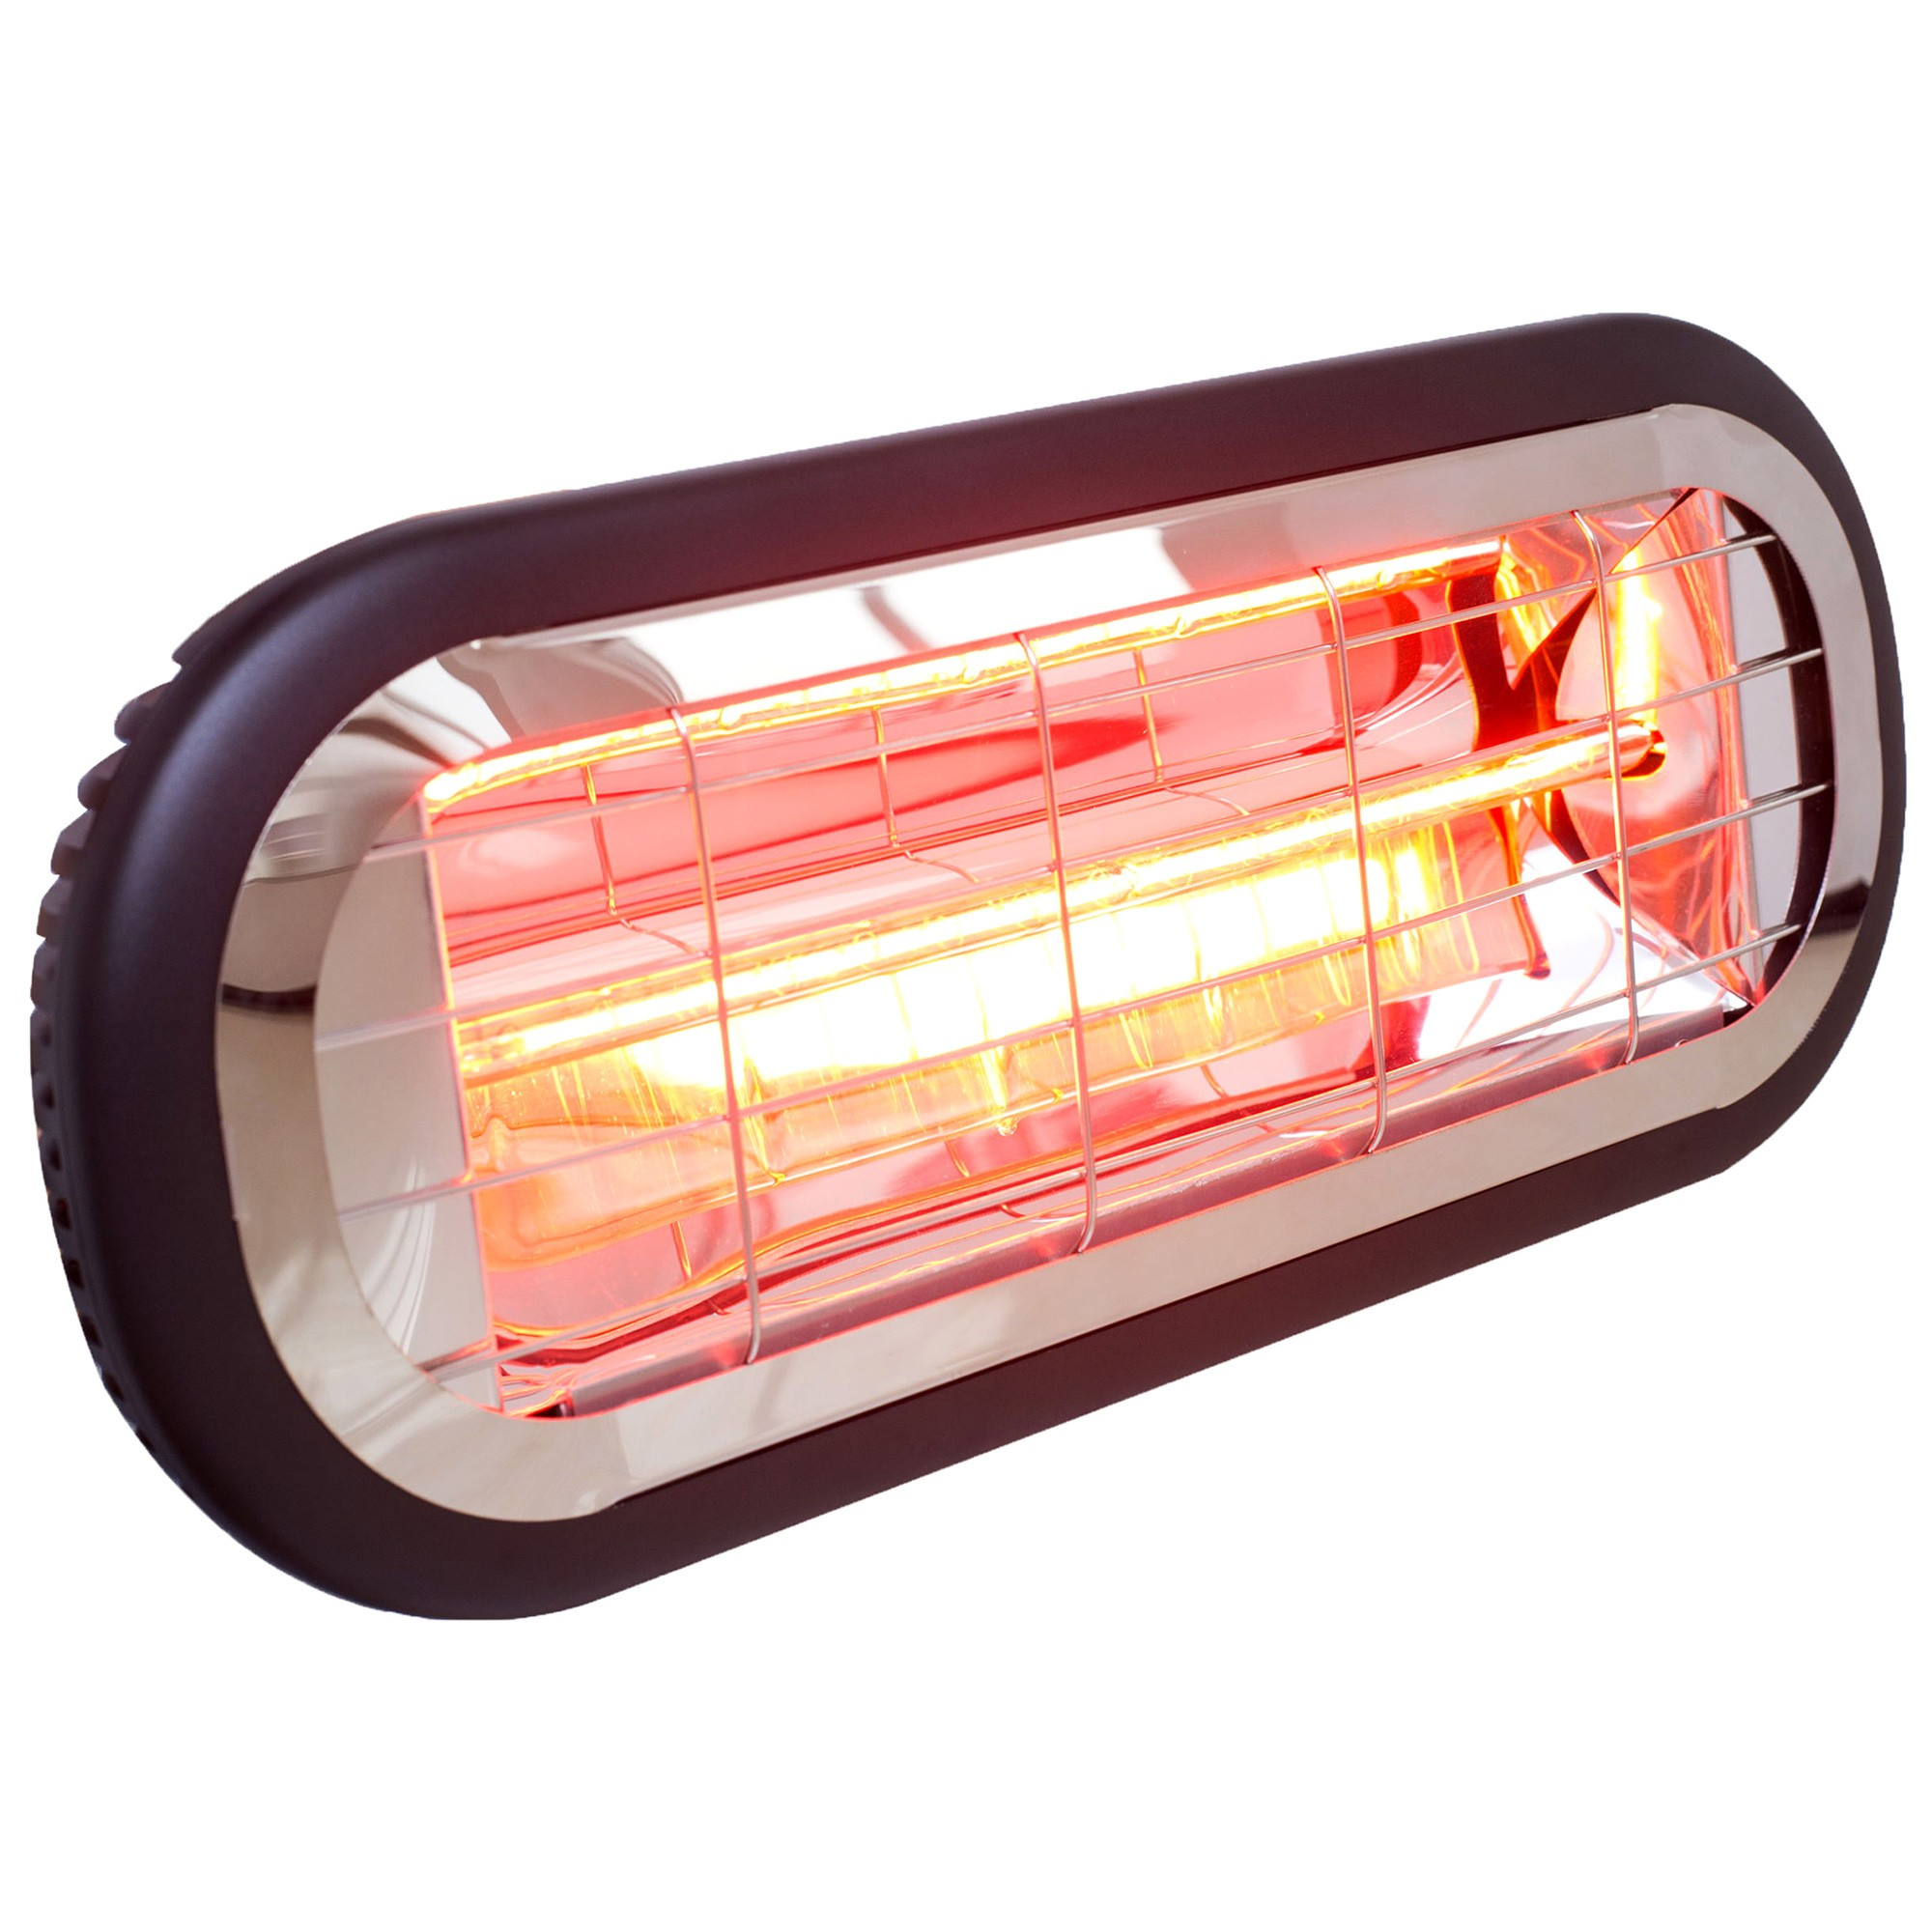 Ventair Sunburst Mini Indoor / Outdoor Compact Infrared Radiant Heater, 2000W